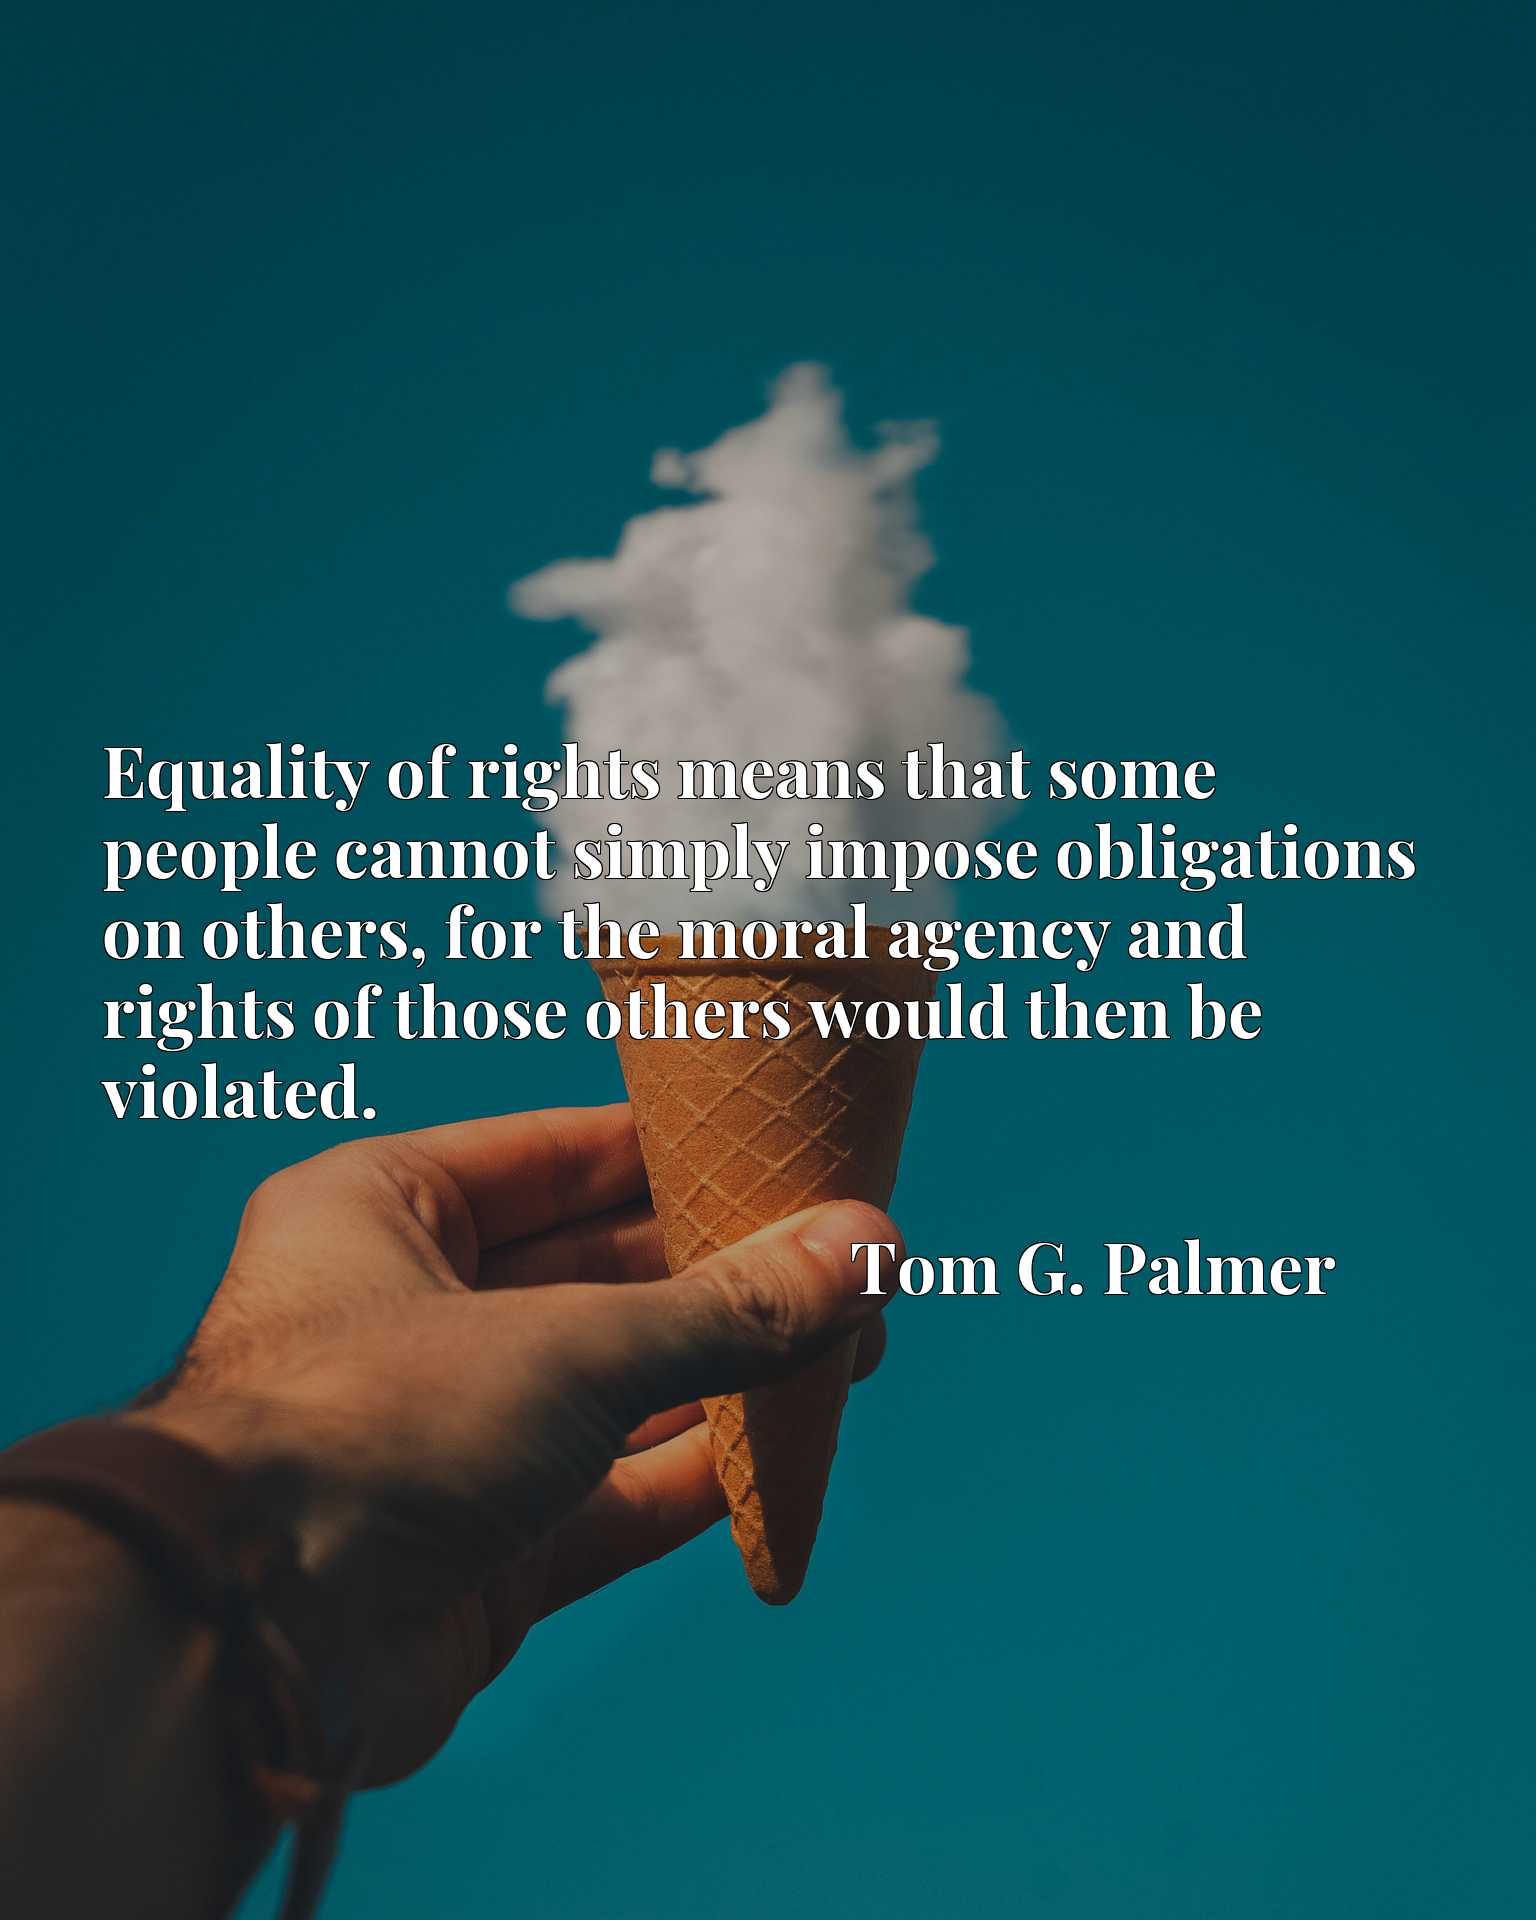 Equality of rights means that some people cannot simply impose obligations on others, for the moral agency and rights of those others would then be violated.